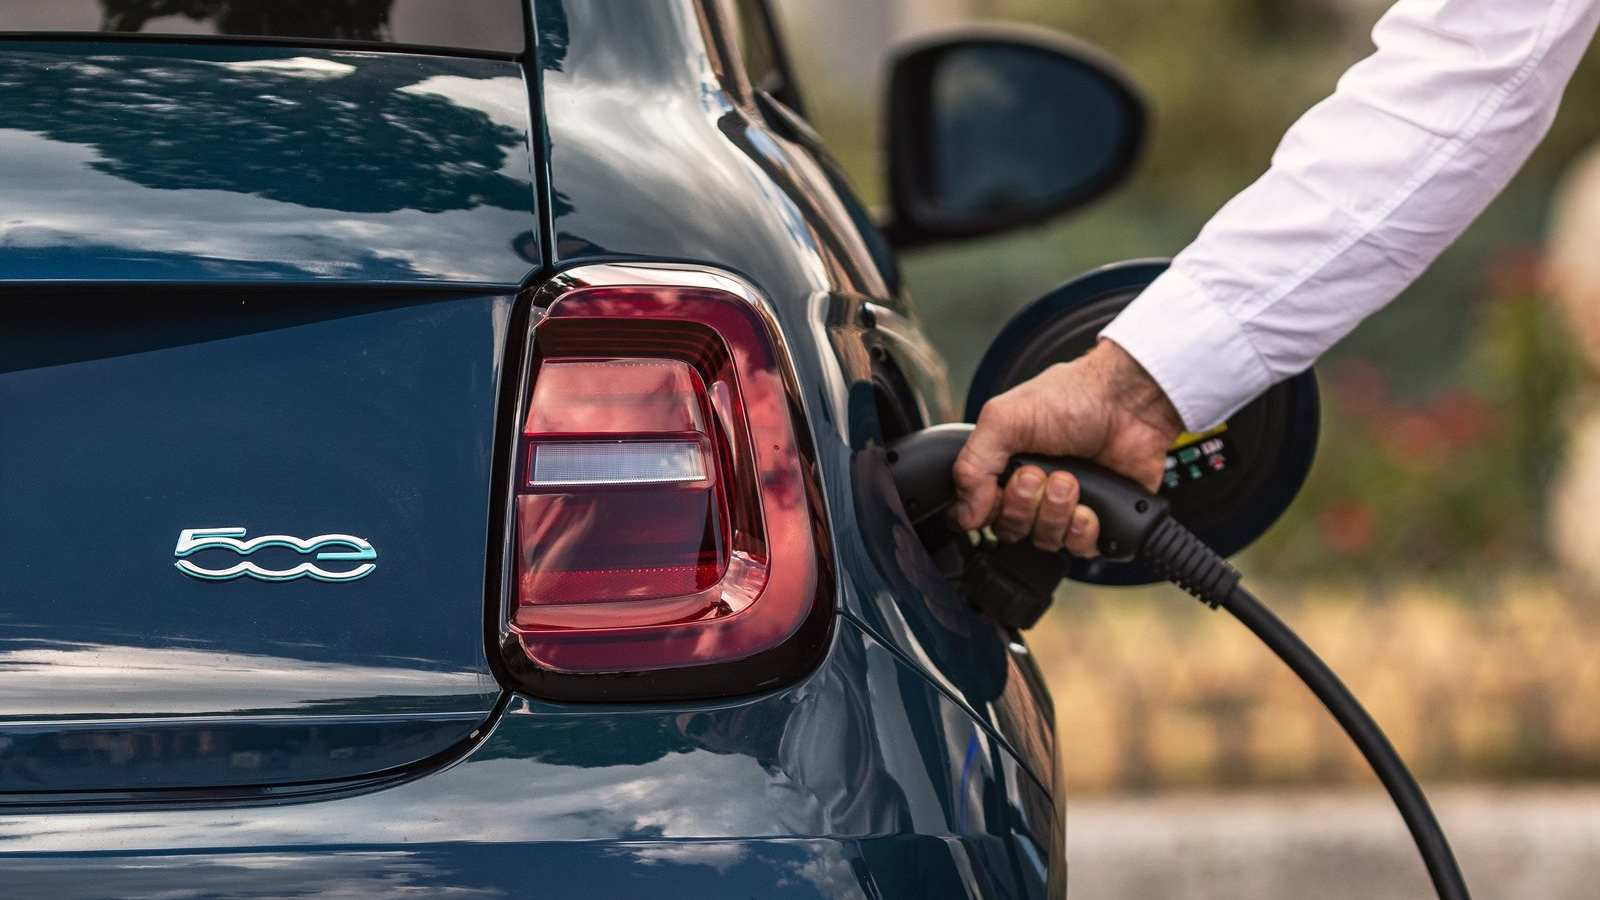 The Fiat 500 is now available only as a full-electric model. Image: Fiat